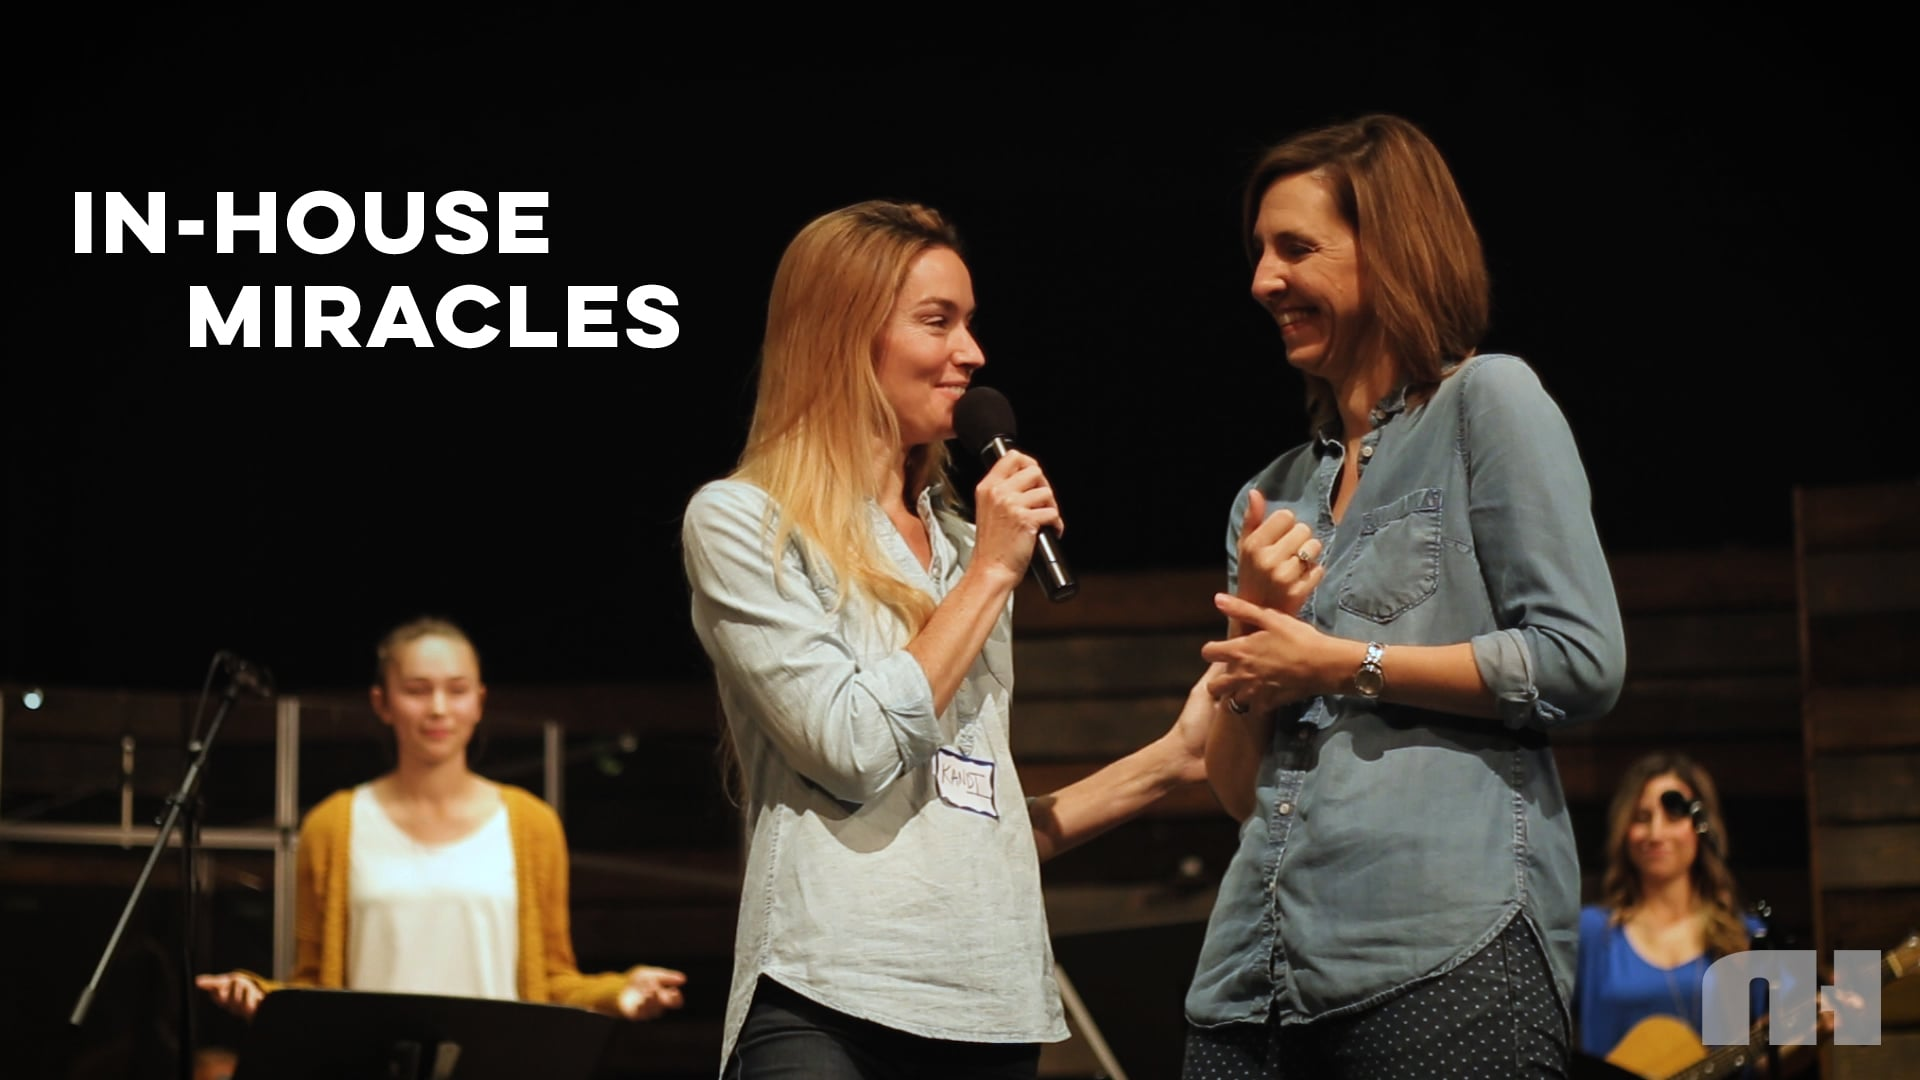 In-House Miracles